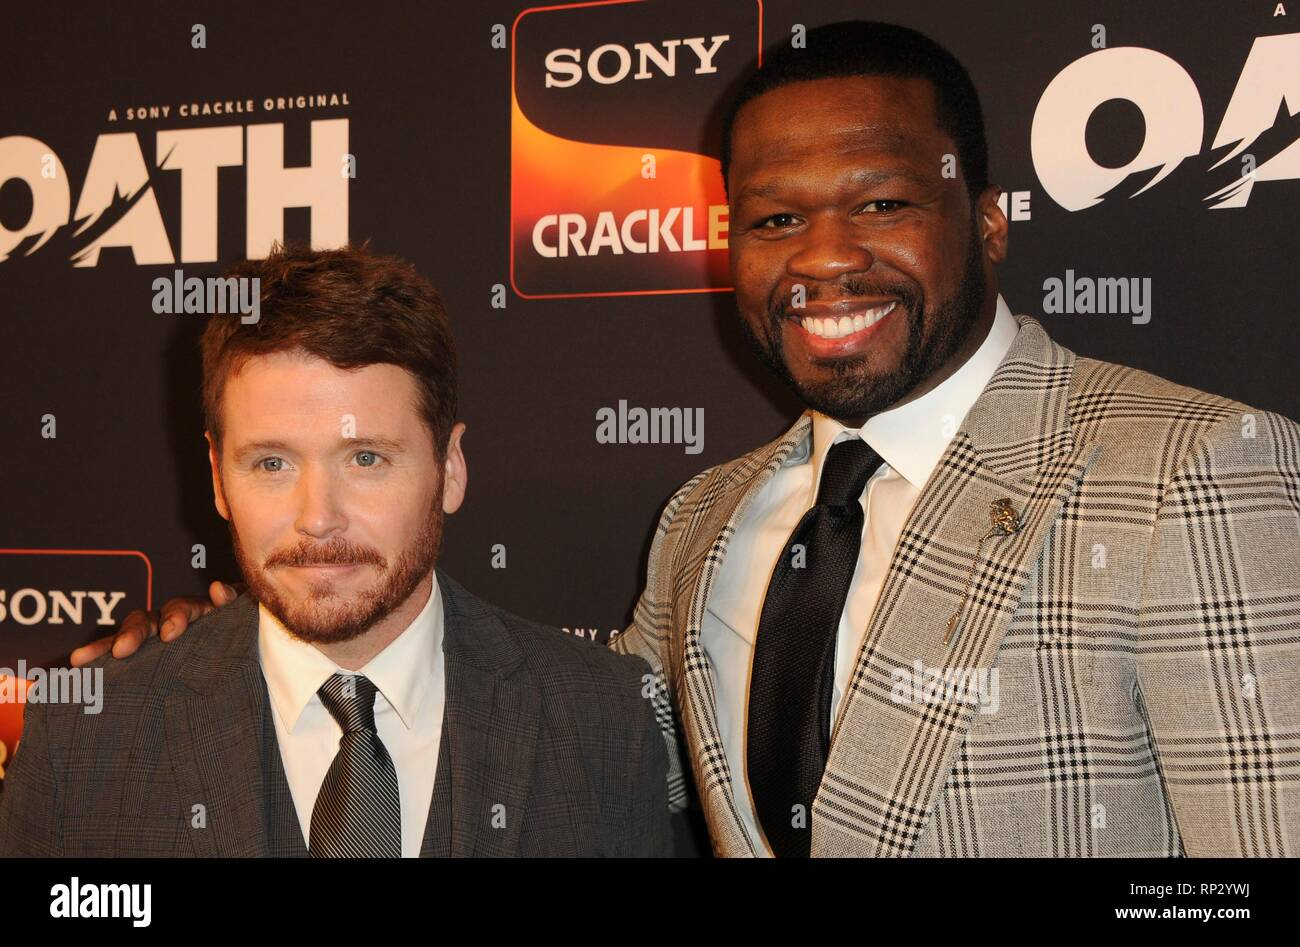 Los Angeles, CA, USA. 20th Feb, 2019. Kevin Connolly, Curtis Jackson 50 Cent at arrivals for Sony Crackle THE OATH Season 2 Screening Presented by Lexus, Paloma, Los Angeles, CA February 20, 2019. Credit: Elizabeth Goodenough/Everett Collection/Alamy Live News - Stock Image